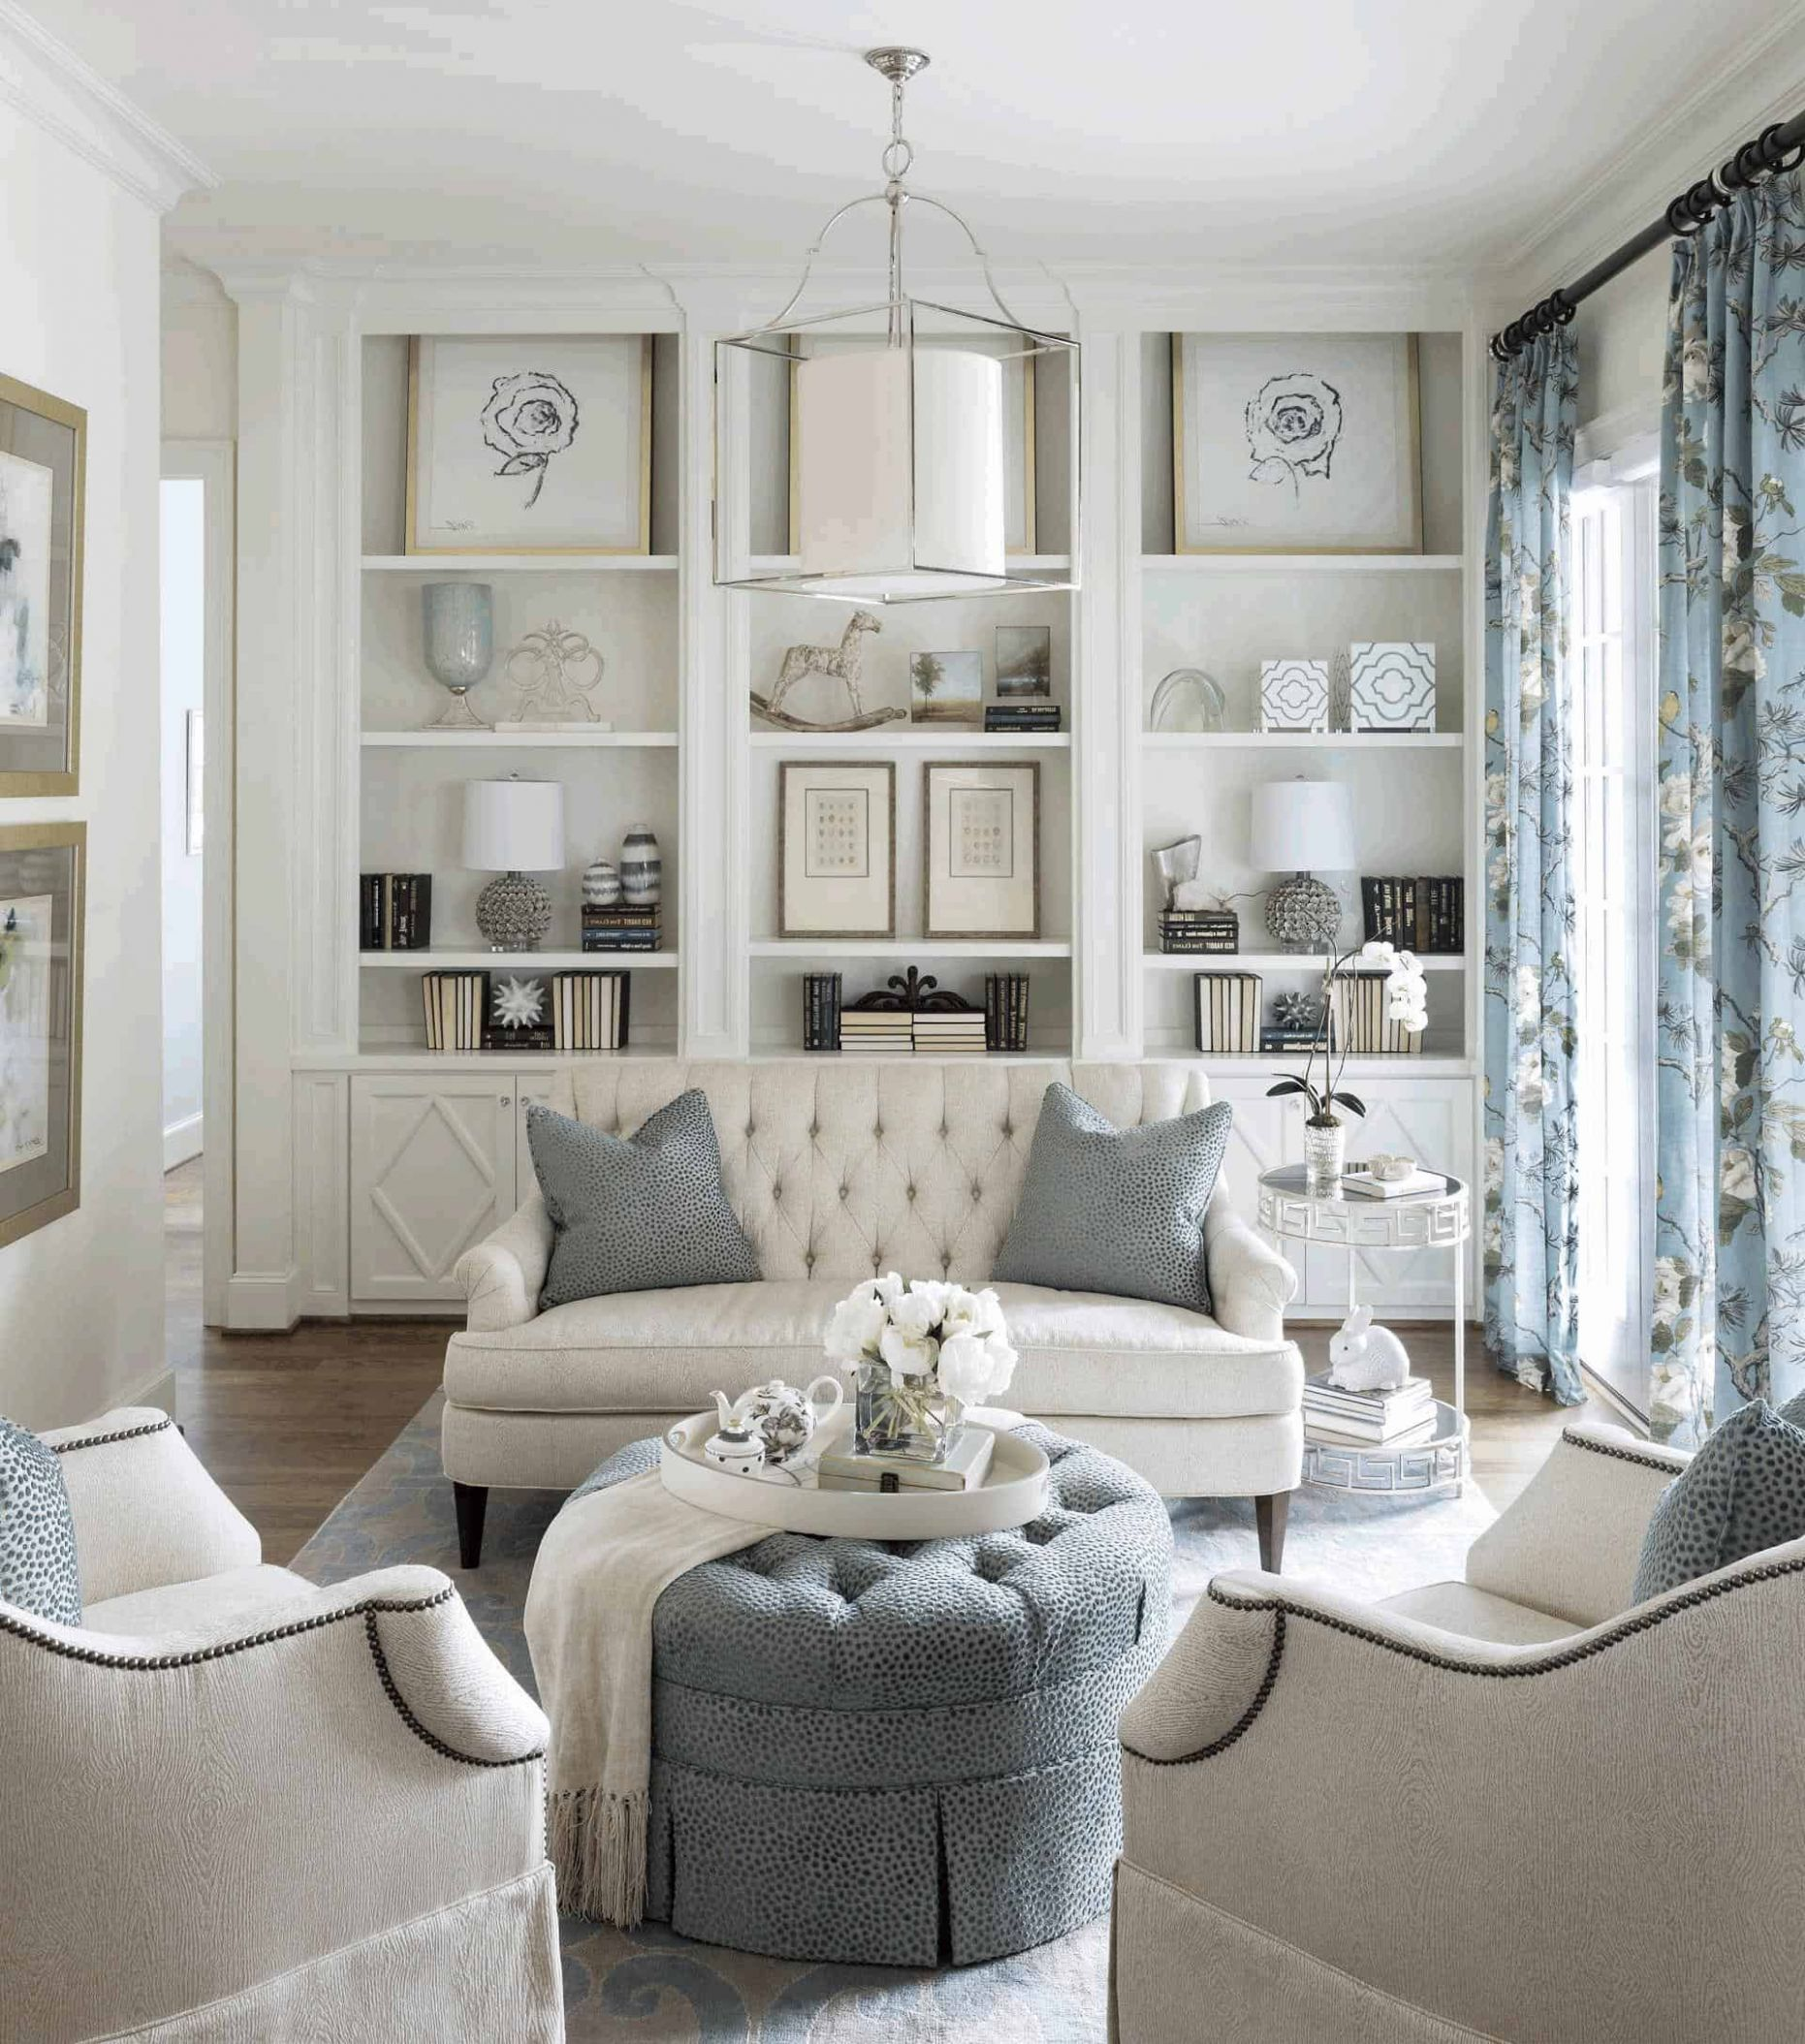 12 Lovely White Living Room Furniture Ideas - living room ideas off white walls